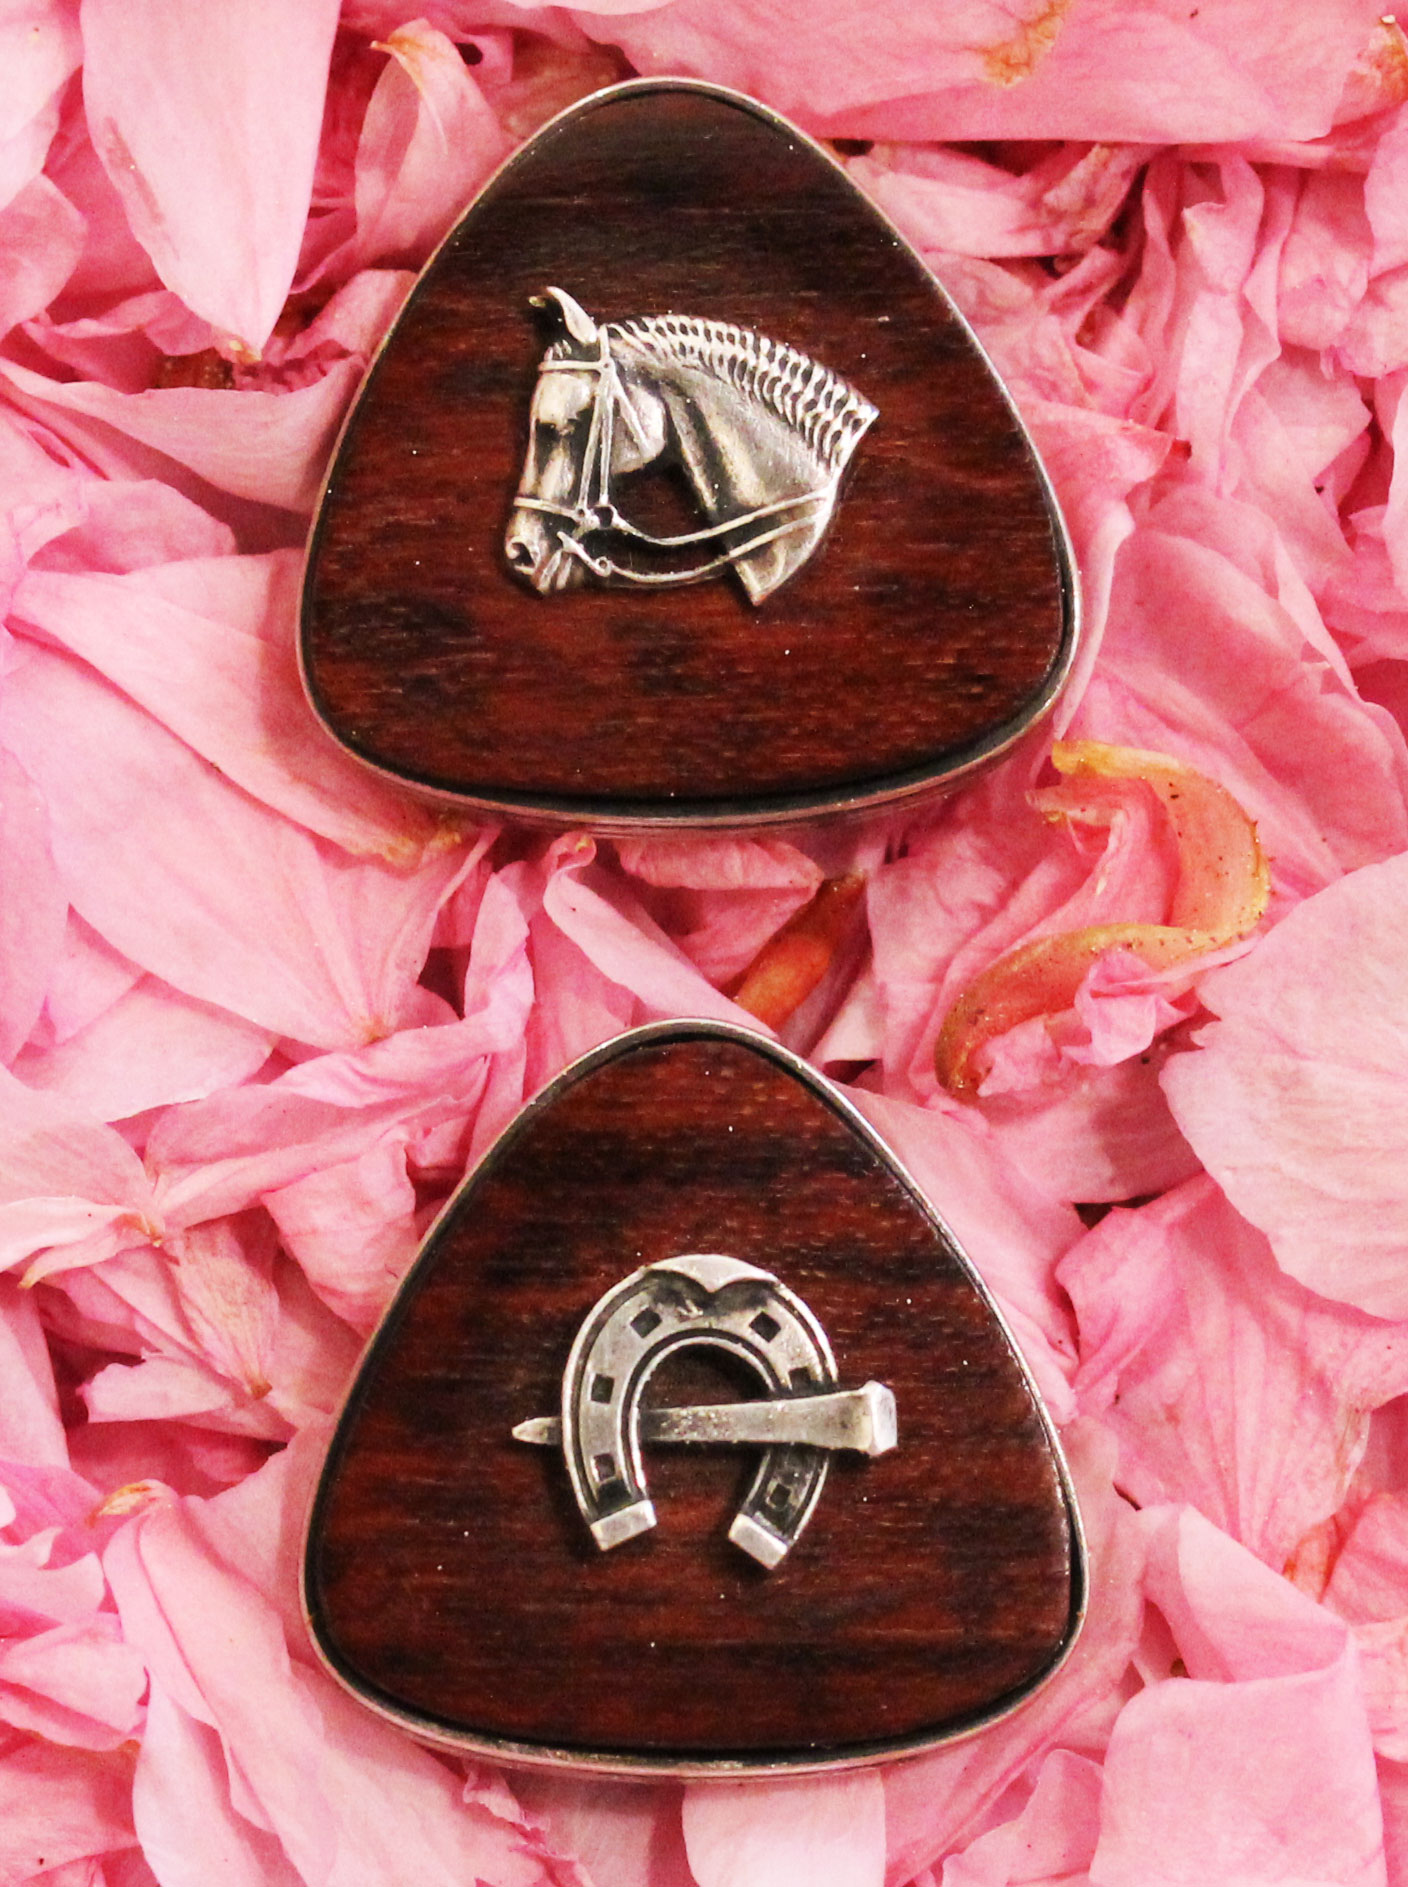 Triangular cufflinks by Victor Mayer with a horse head on rosewood